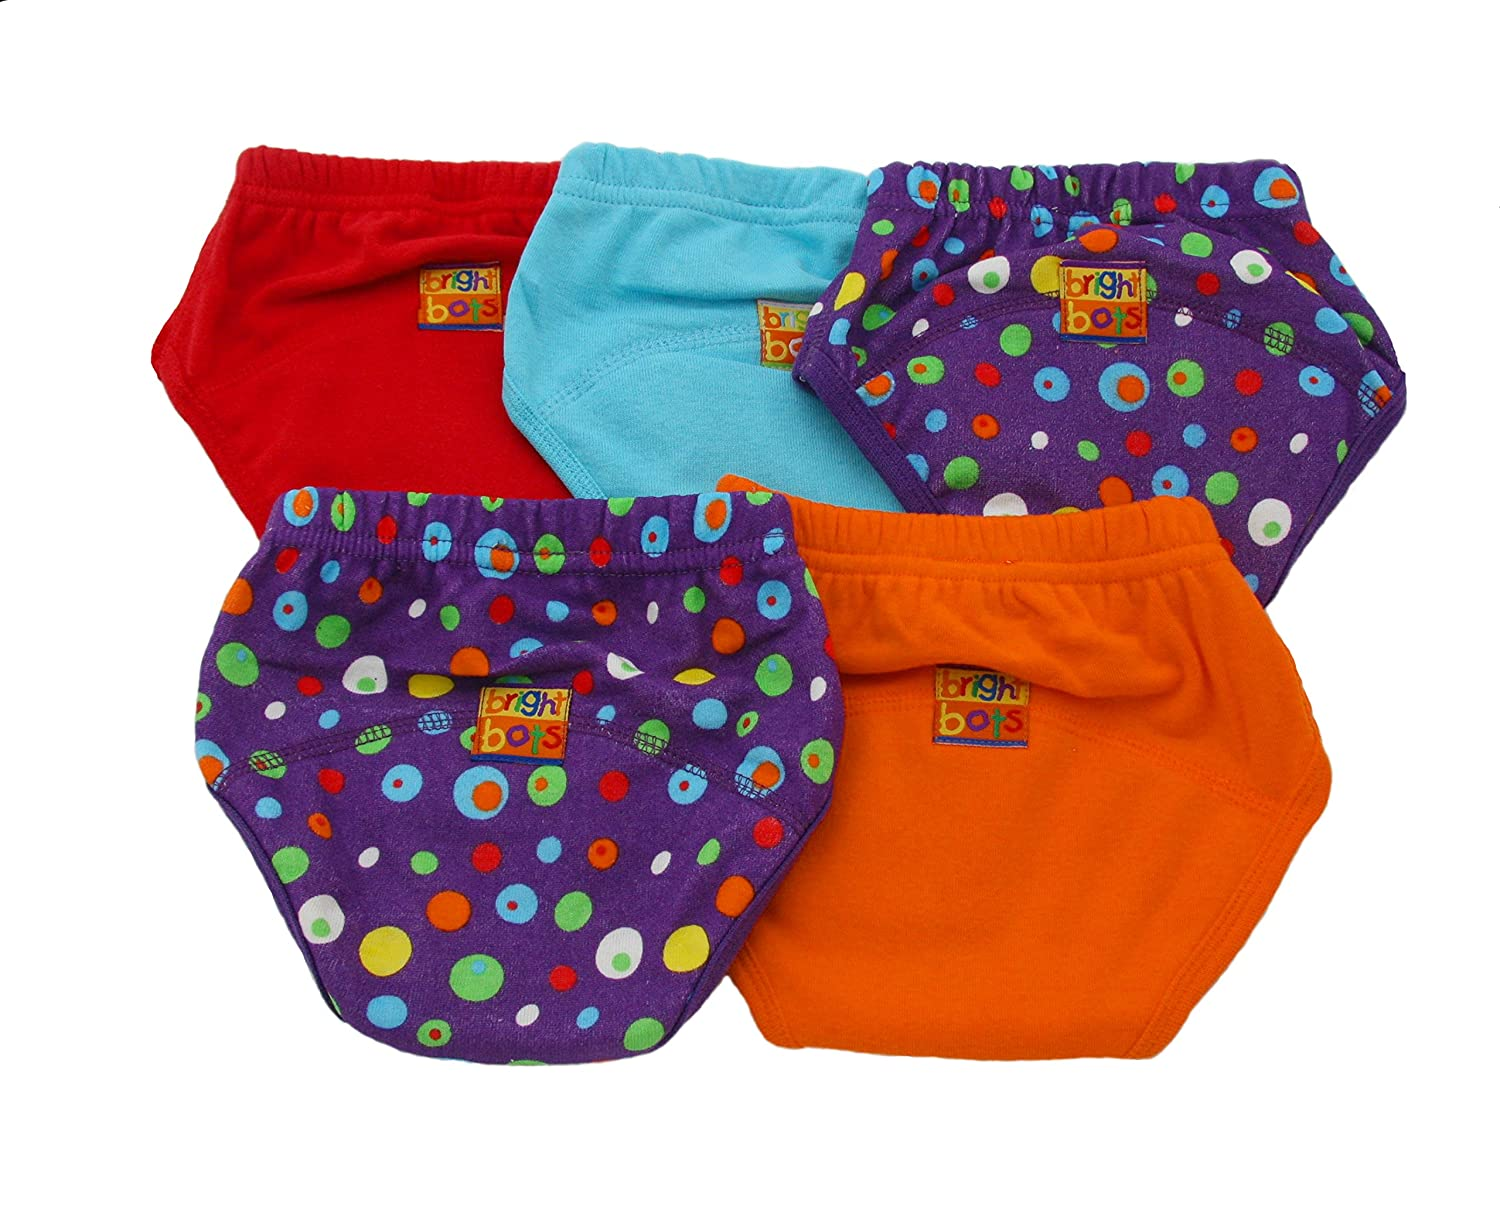 EXLarge Approx 30-36m Bright Bots Unisex Washable Potty Training Pants with PUL Lining 5pk